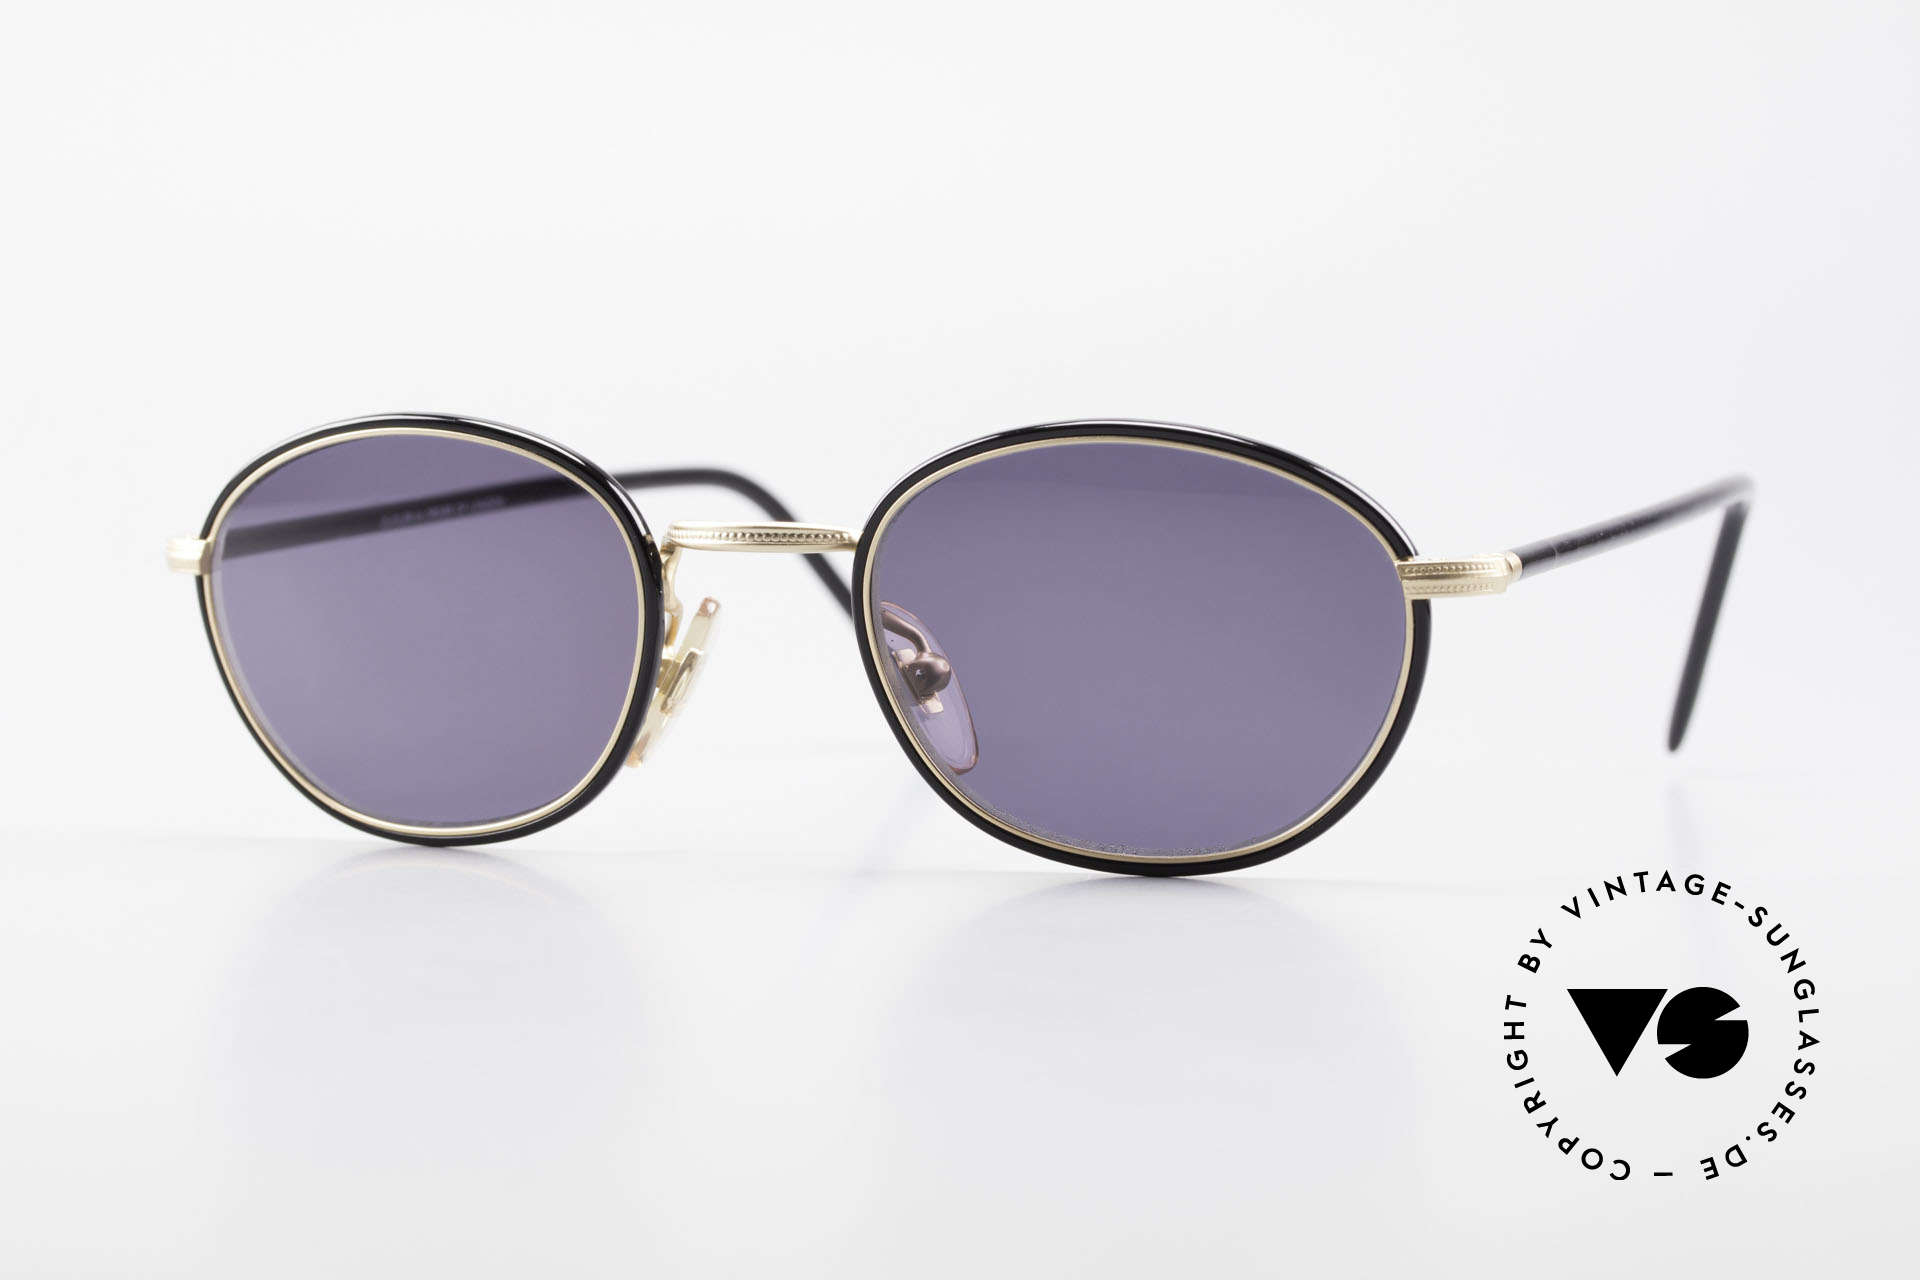 Cutler And Gross 0394 Classic Vintage Sunglasses, CUTLER and GROSS designer shades from the late 90's, Made for Men and Women